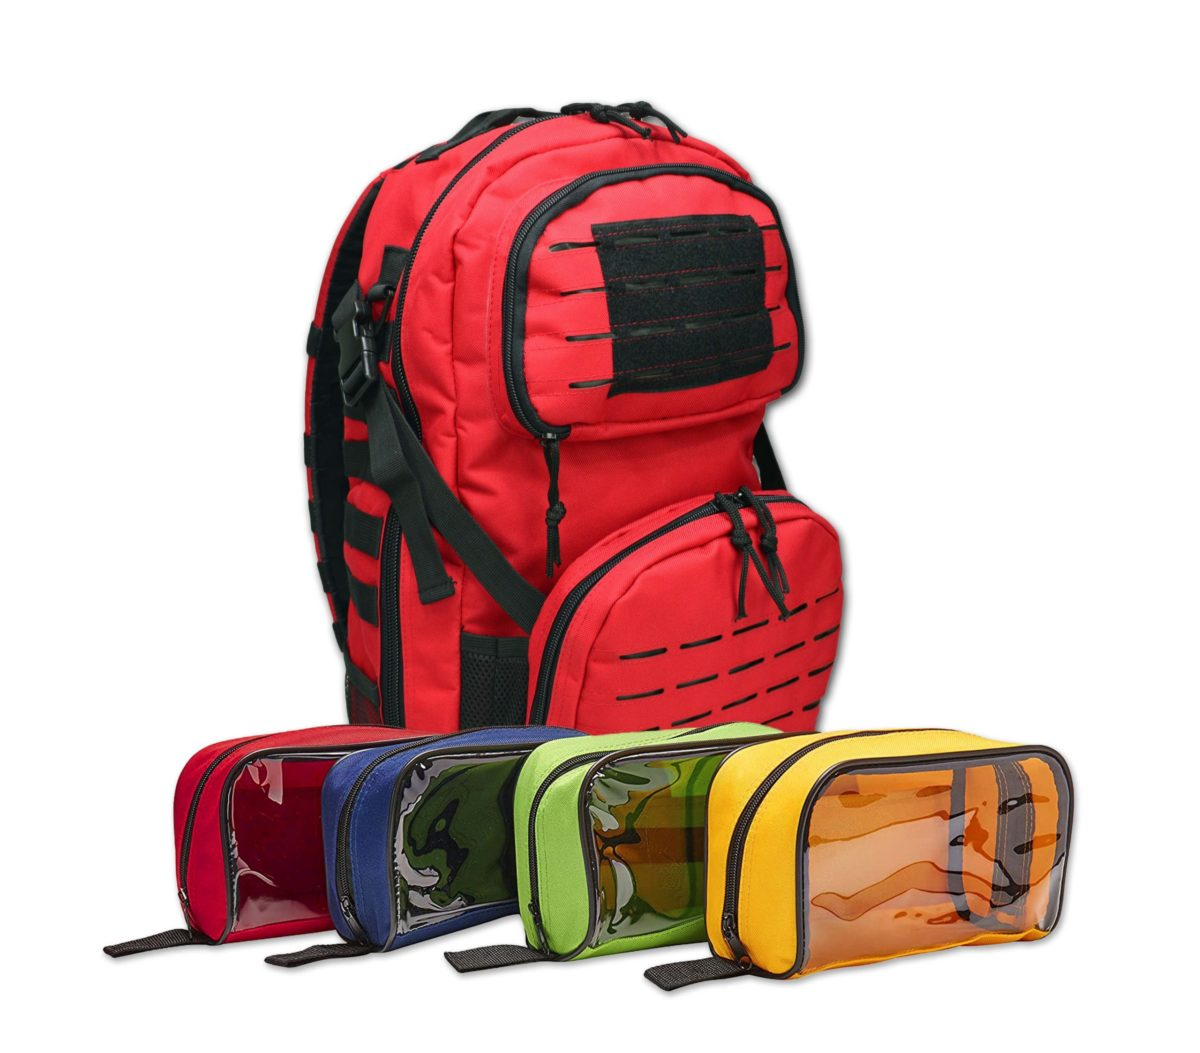 Premium tactical backpack w/ modular pouches & hydration port